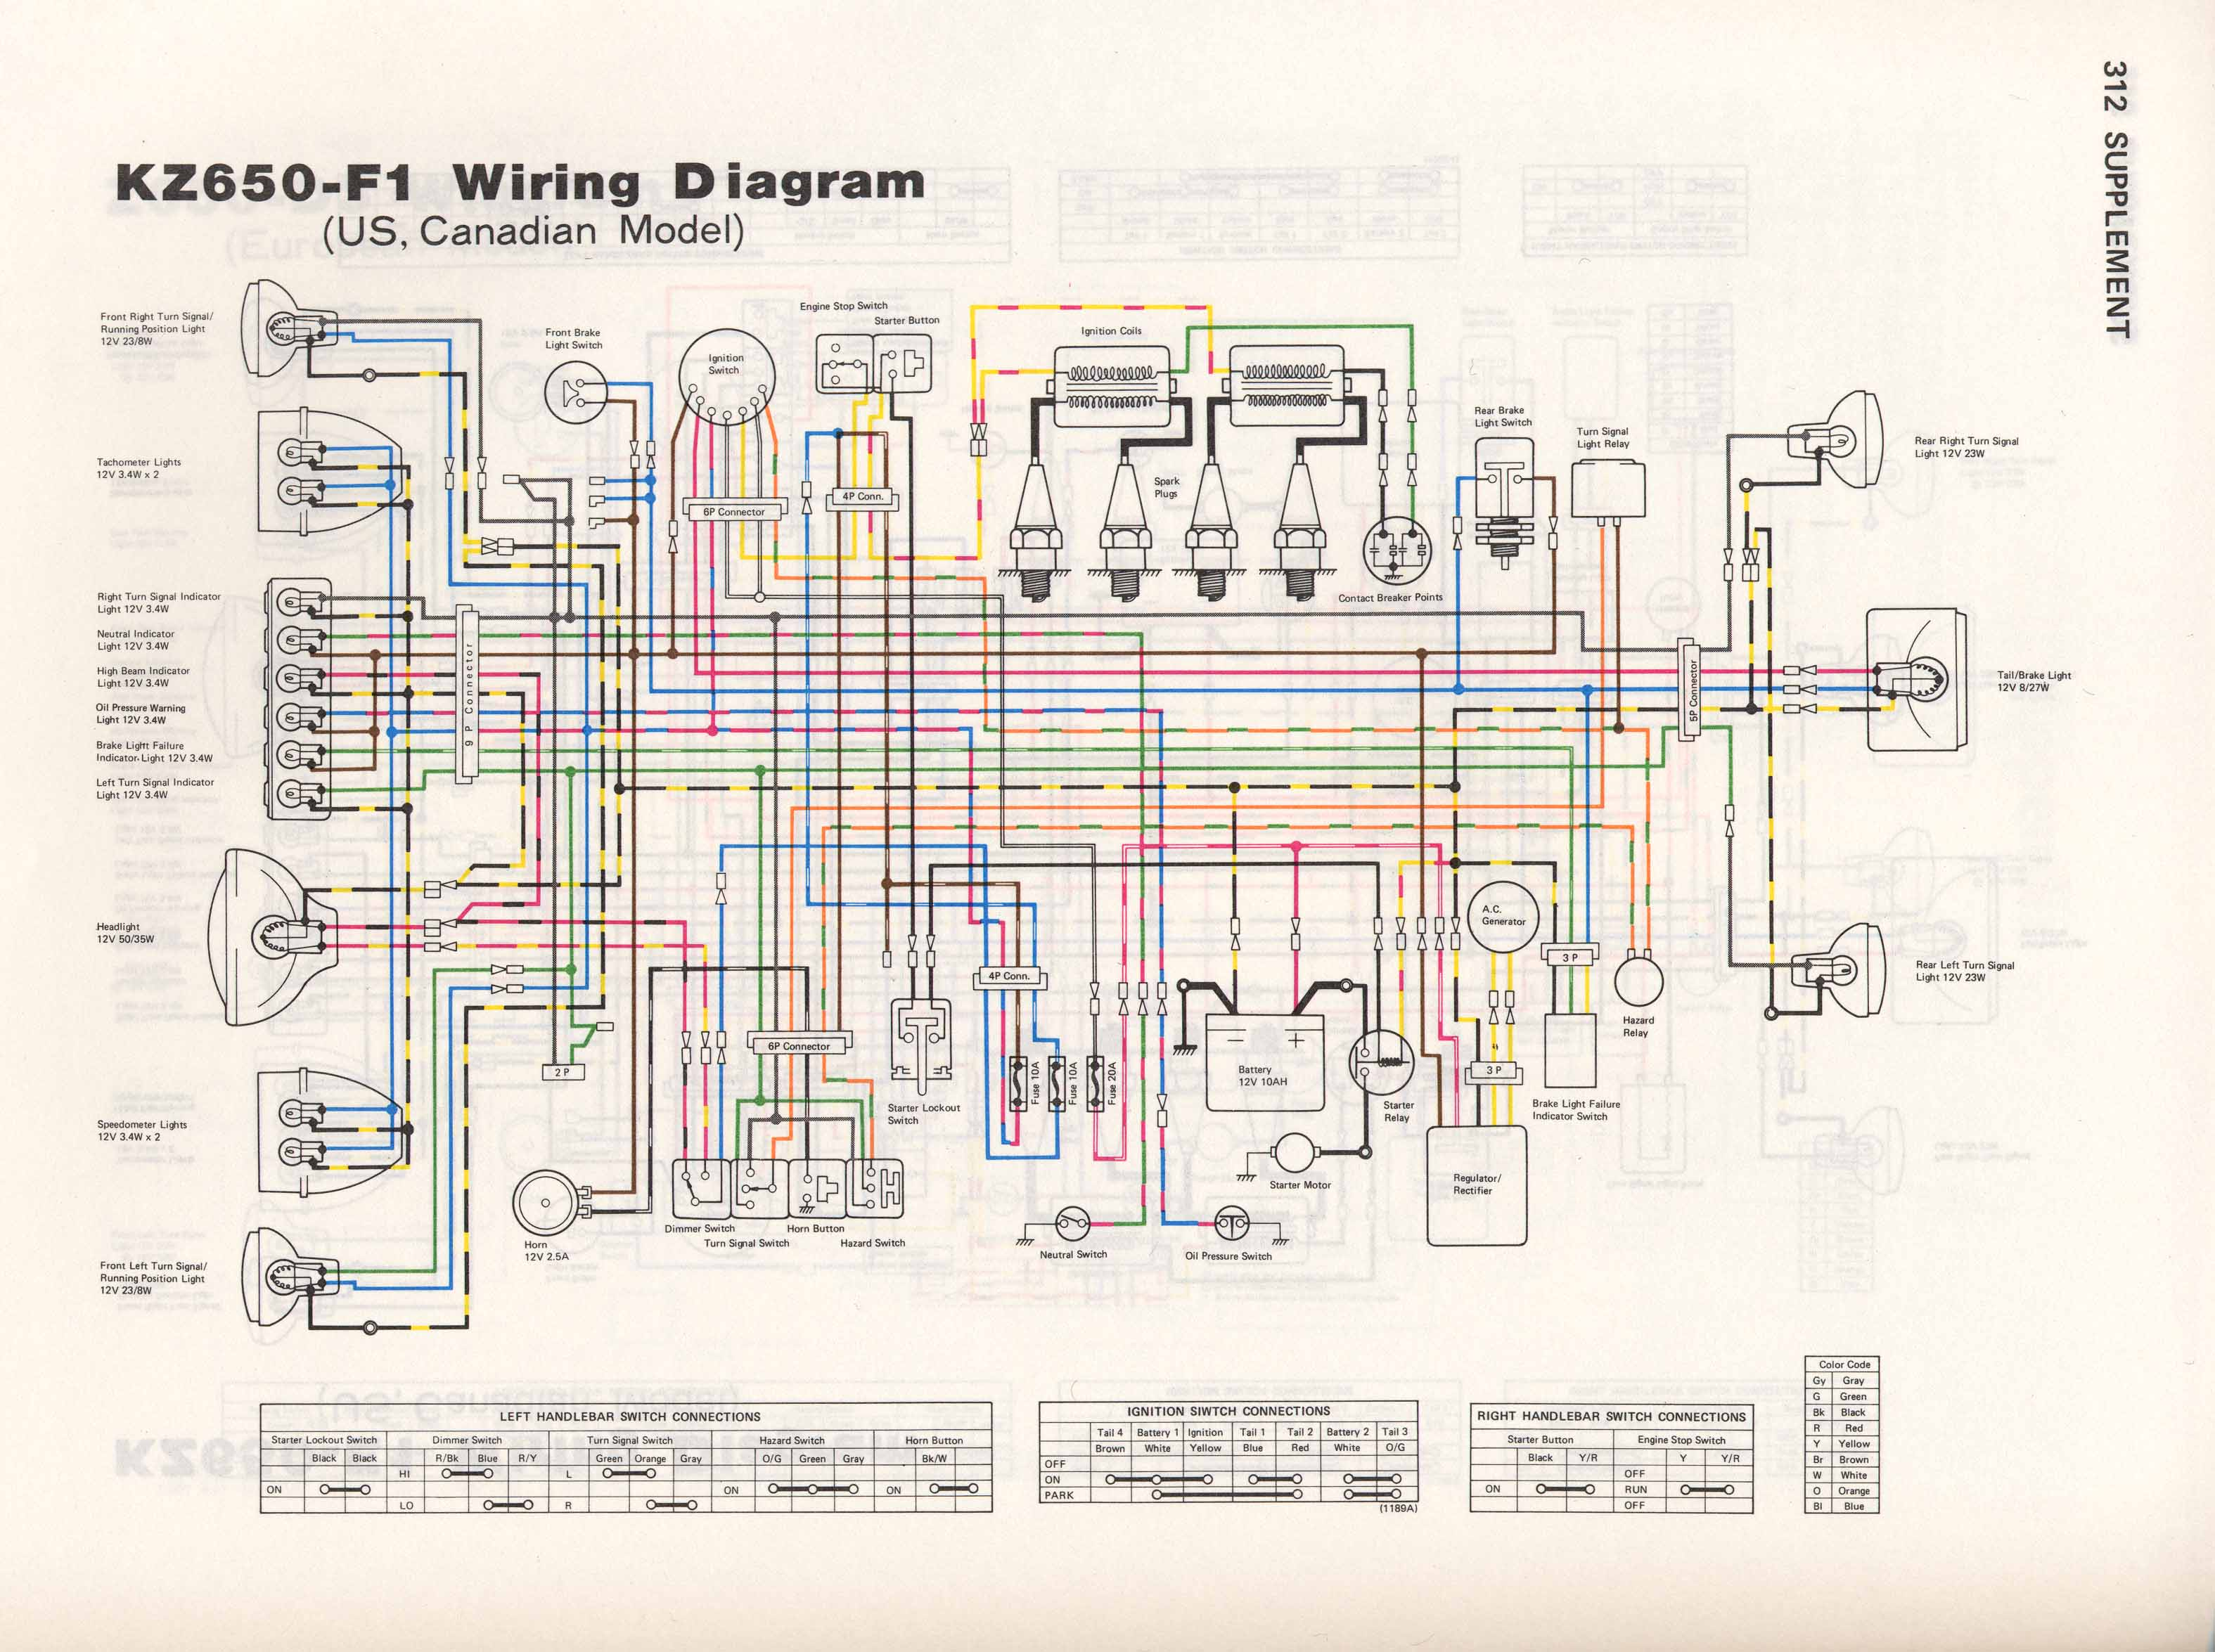 Kz750 Wiring Diagram - Wiring Diagram And Schematic For ...